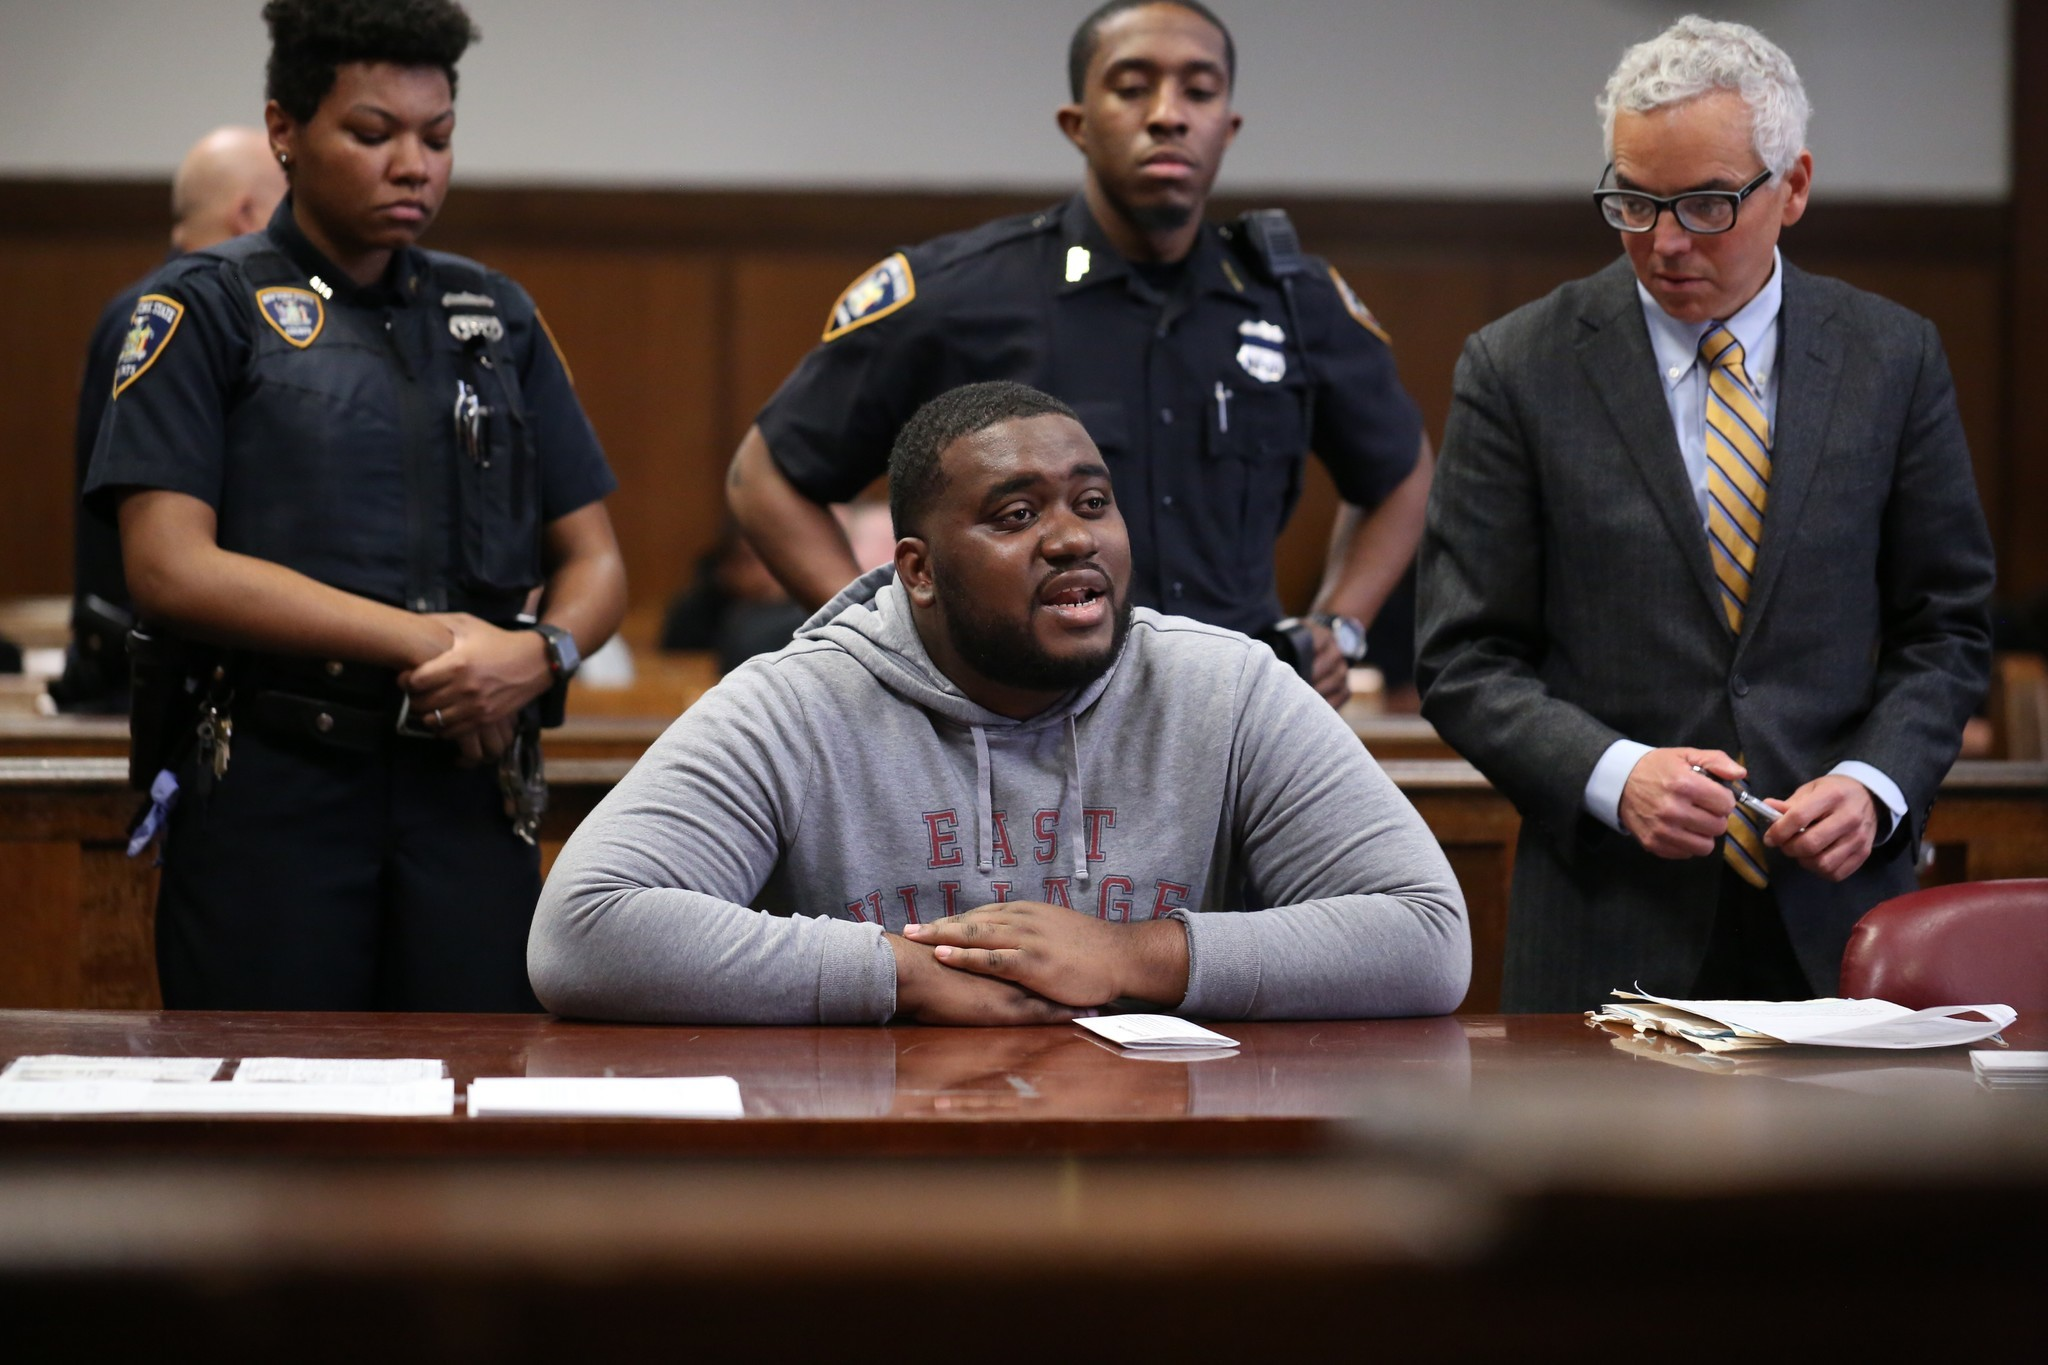 Mentally ill FedEx worker sentenced to 10 years in prison for Midtown stabbing